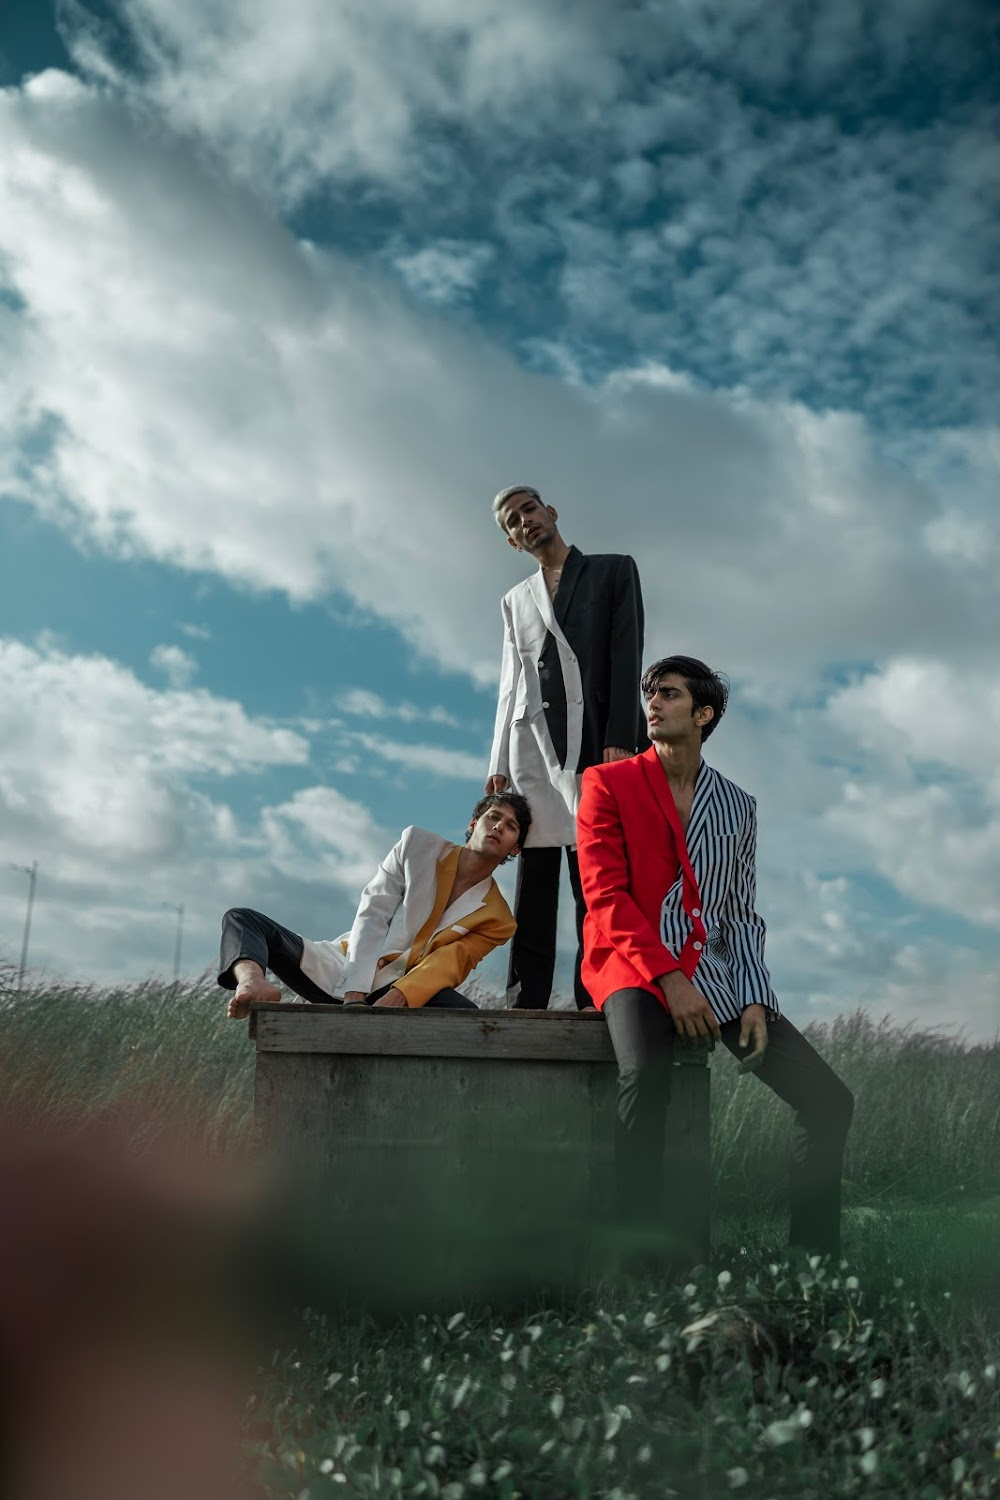 photography-of-three-men-in-an-outdoor-location-2899937